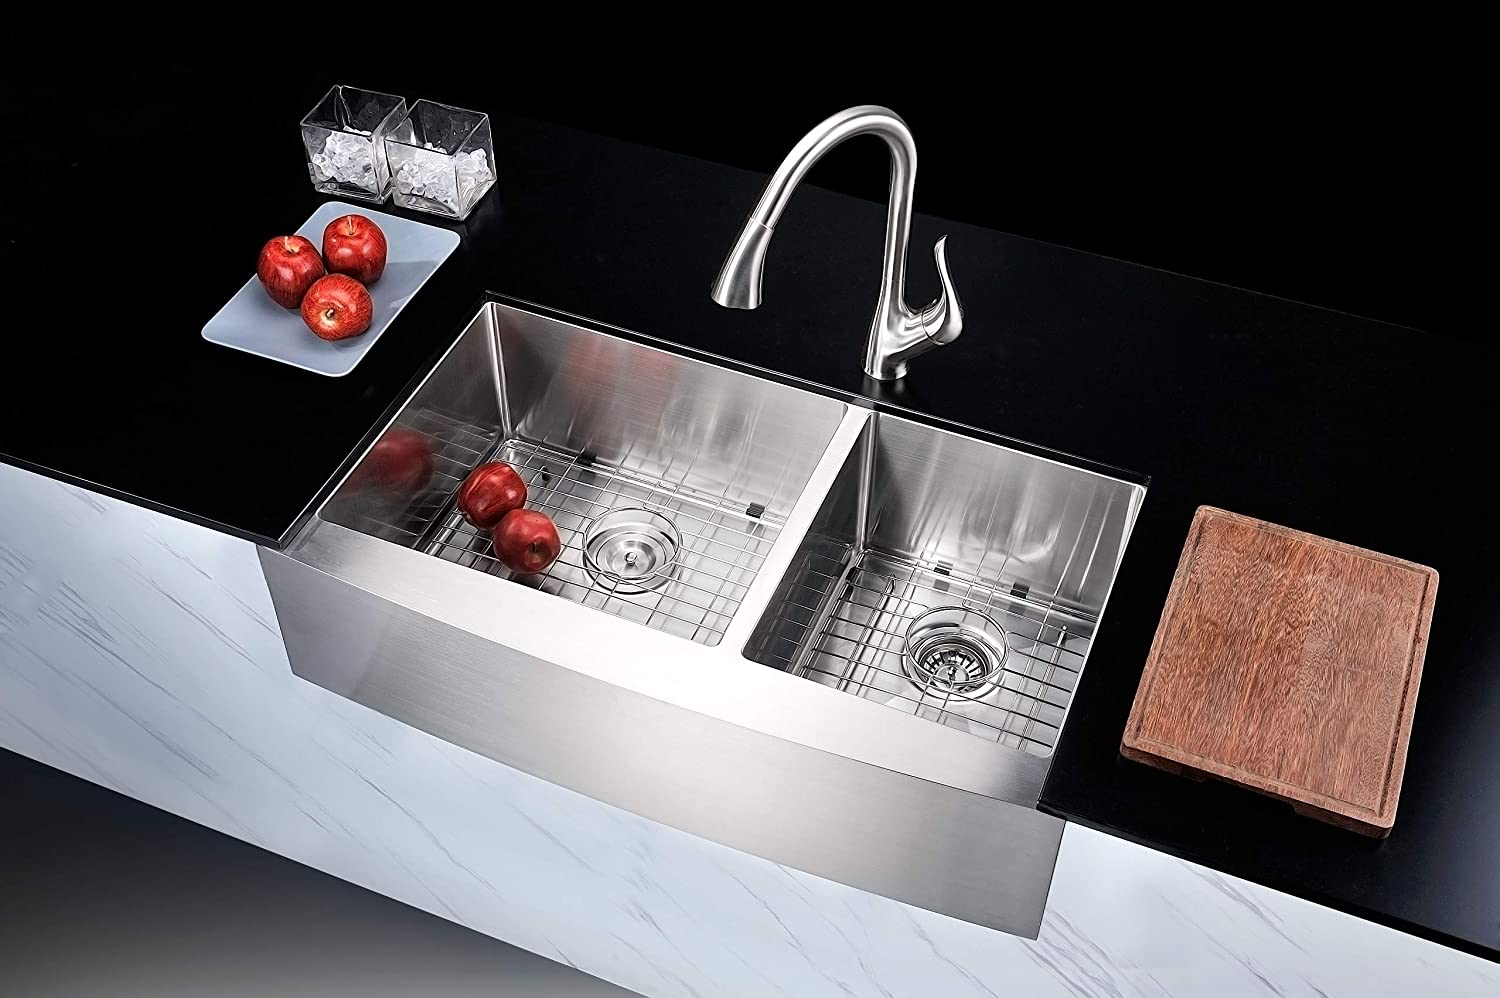 Anzzi Elysian 36 Farmhouse Stainless Steel 60 40 Double Bowl Kitchen Sink In Brushed Satin With Strainer 18 Gauge Large Dual Deep Soak Basin Commercial Utility Prep Work Station K Az3620 3a Amazon Com